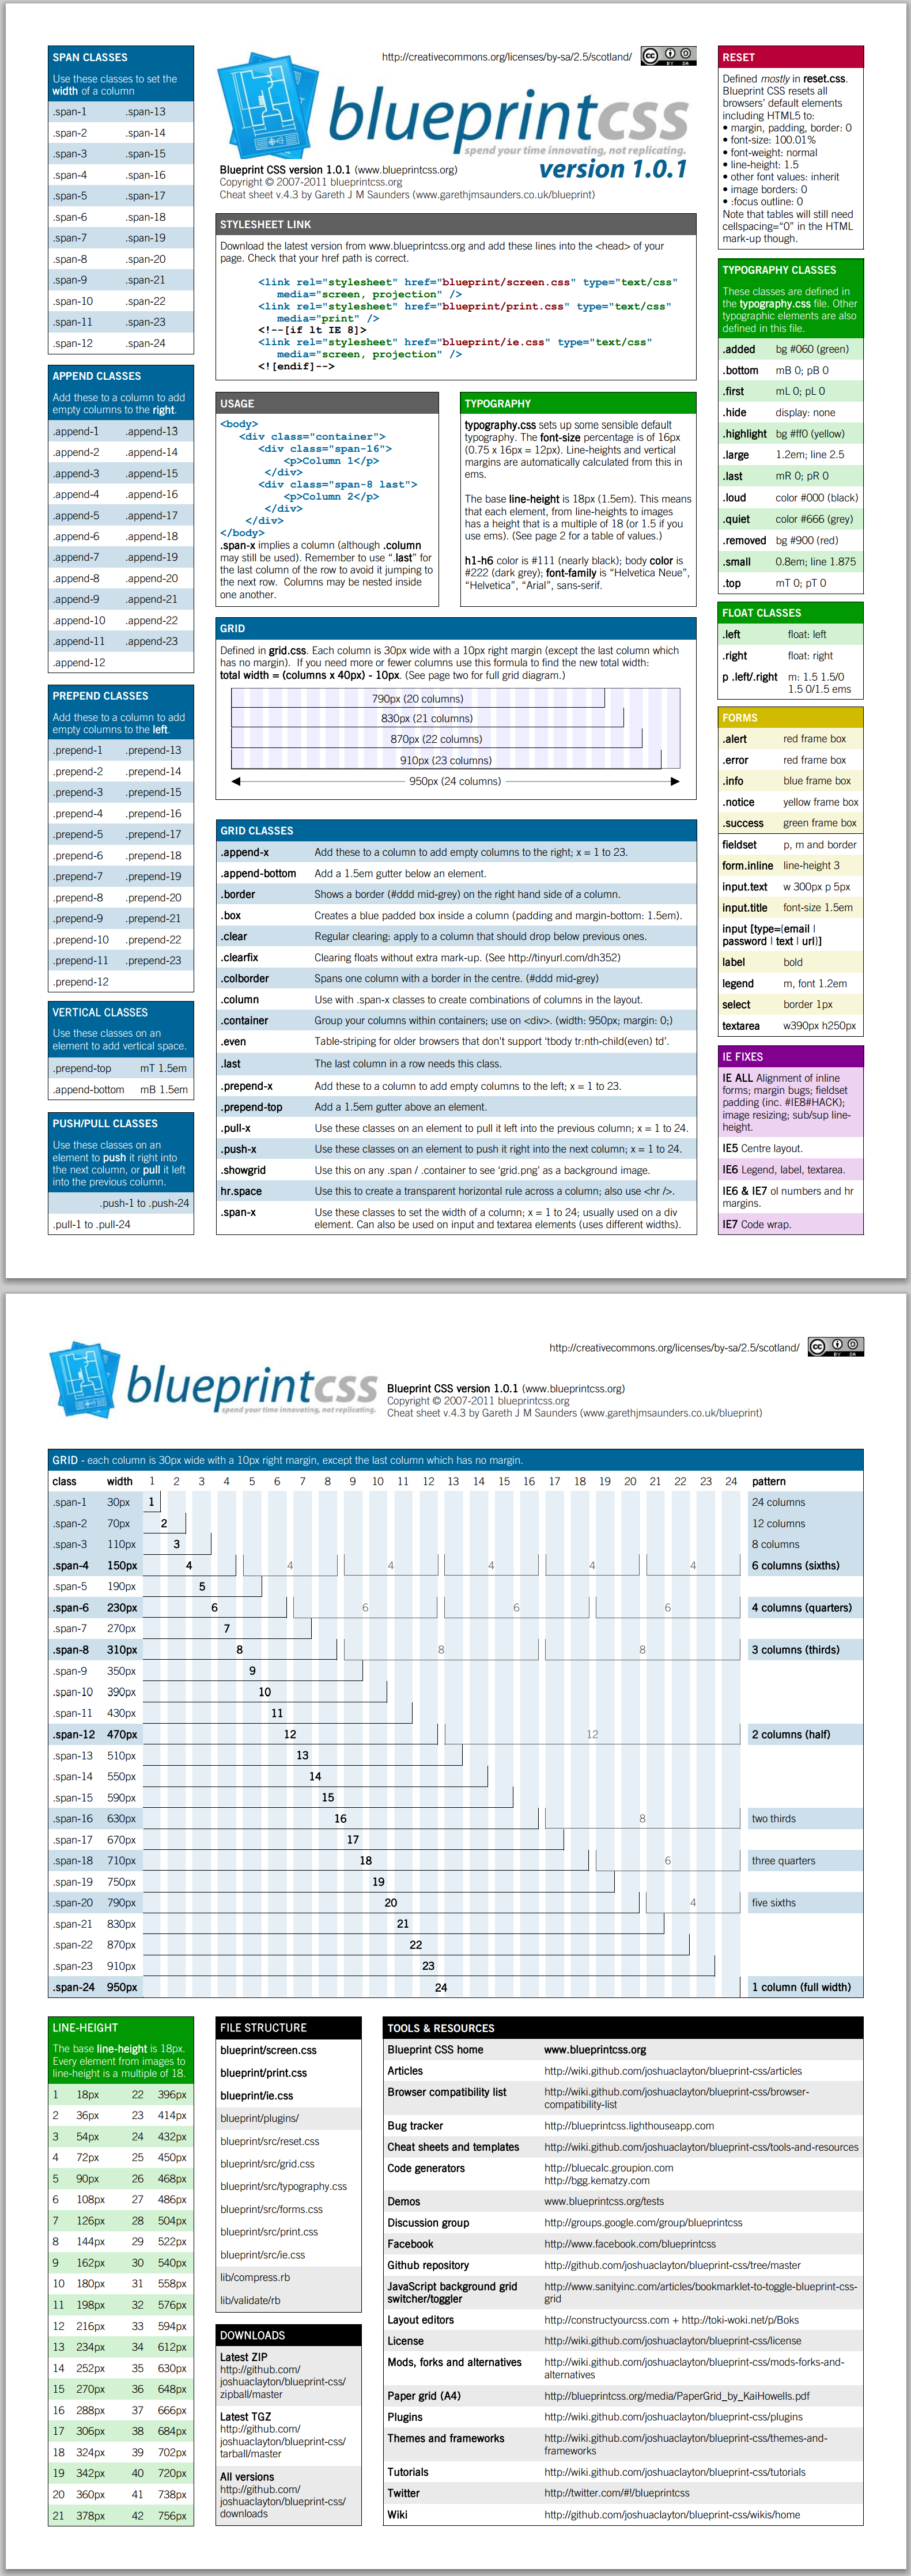 Blueprint css a css framework for web designers and developers css blueprint css a css framework for web designers and developers css mustread design framework css eewee malvernweather Images